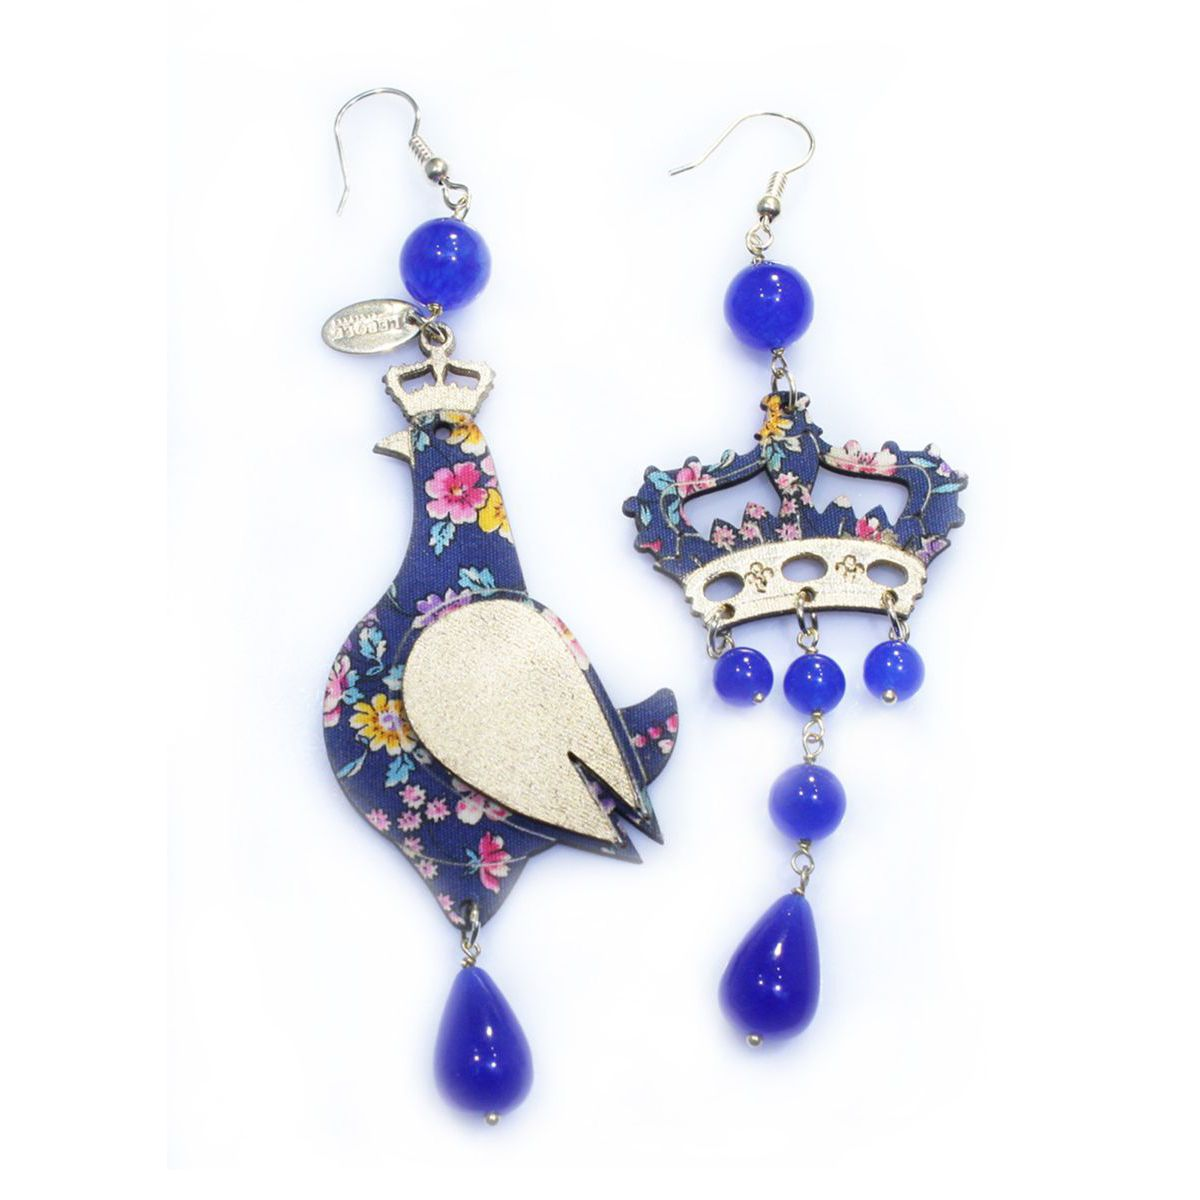 REGALINA BLUE EARRINGS Blue LEBOLE GIOIELLI